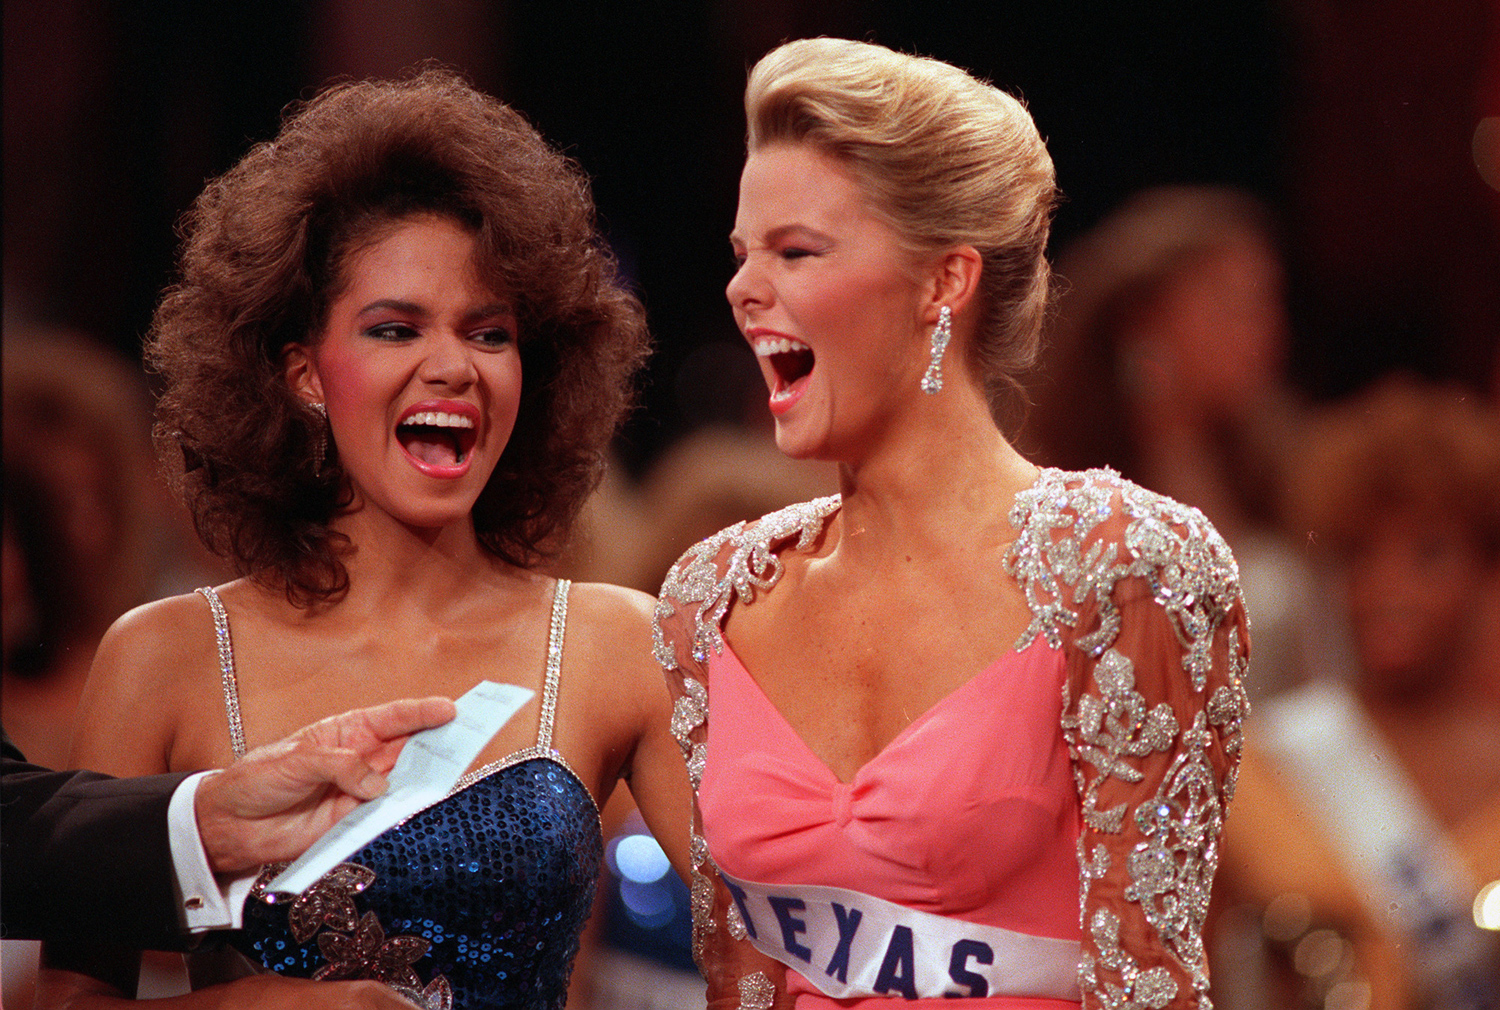 Christy Fichtner during the Miss Universe competition